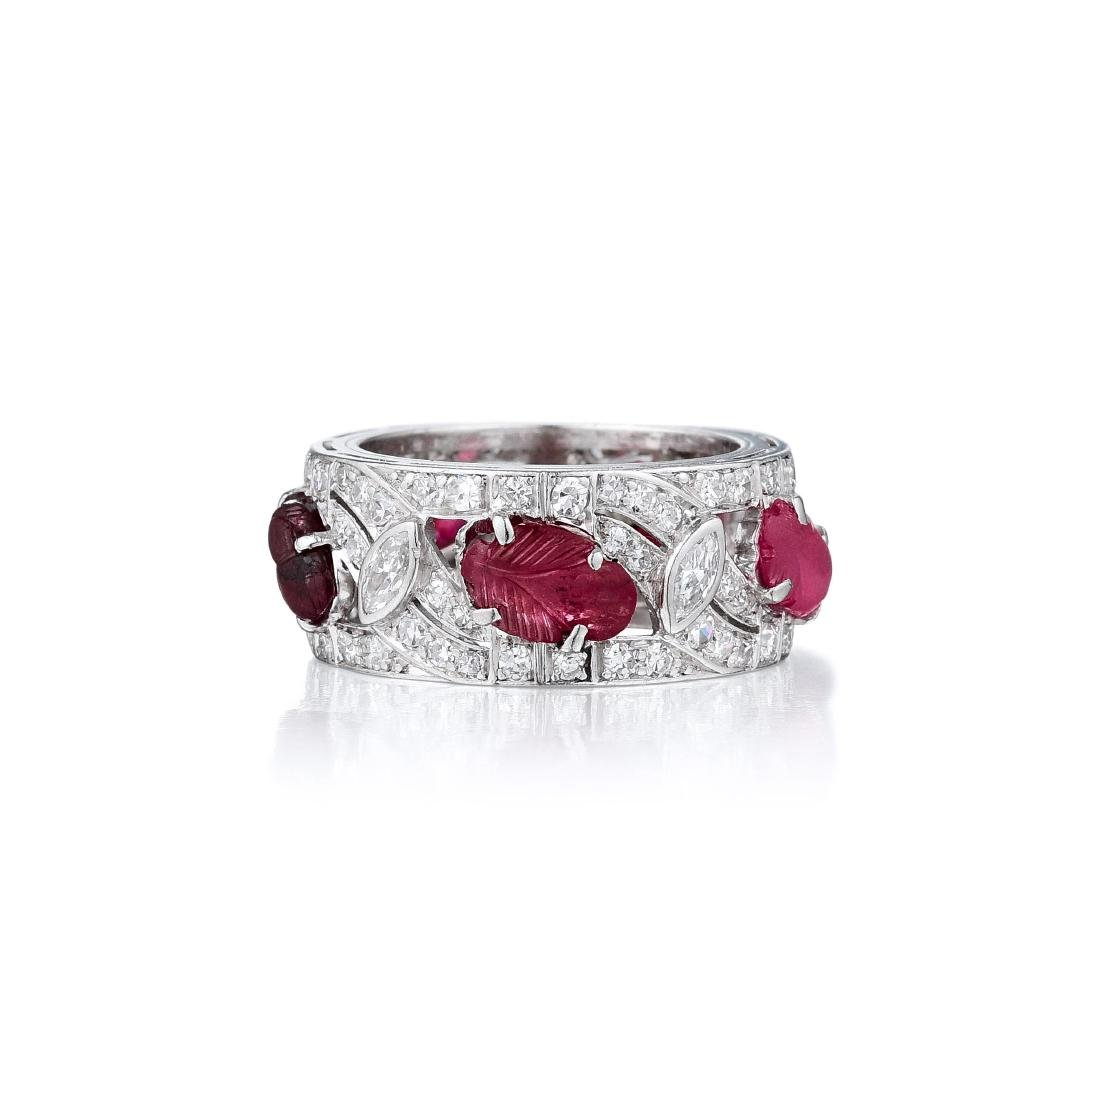 An Art Deco Platinum Ruby and Diamond Band